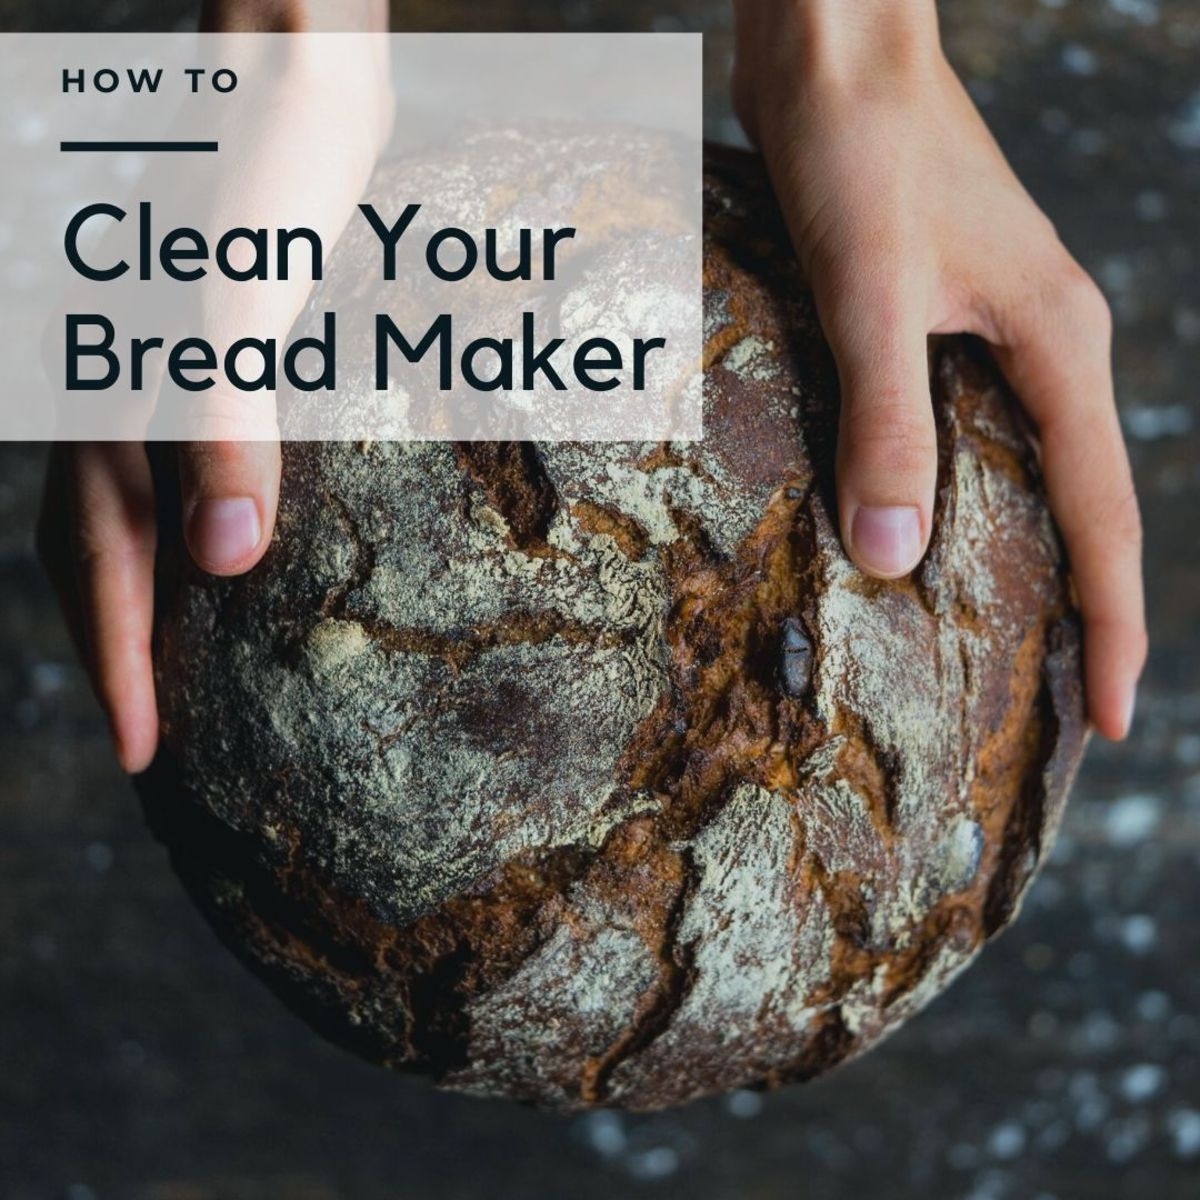 Learn how to clean your bread machine in just four easy steps.